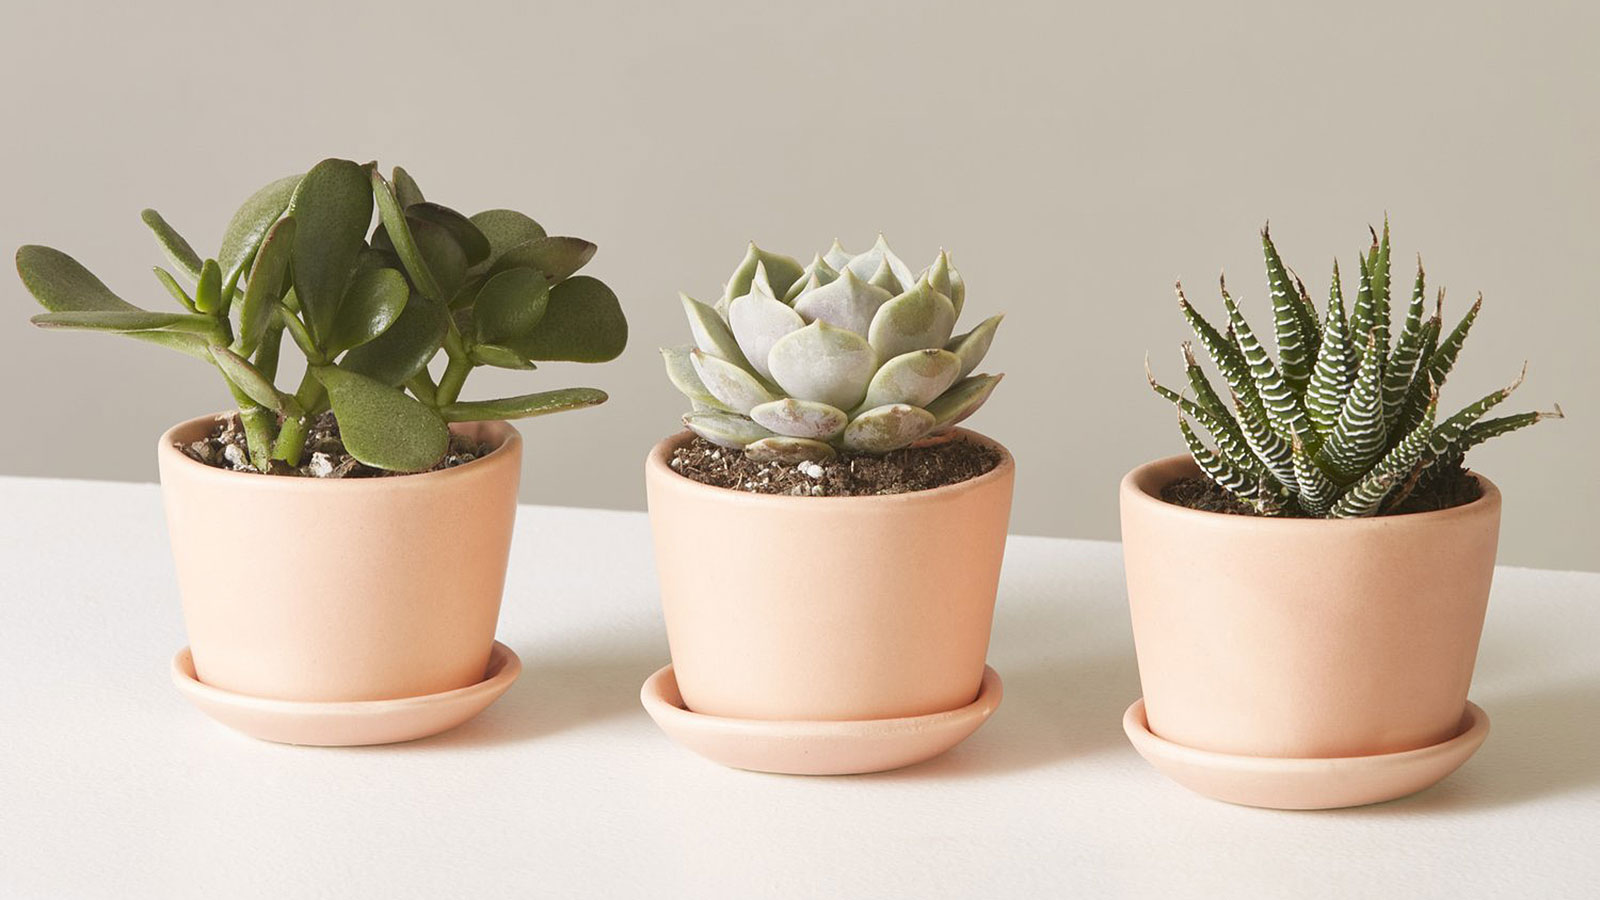 9 Mini Succulents From Your Desk That Will Survive Your Dimly Lit